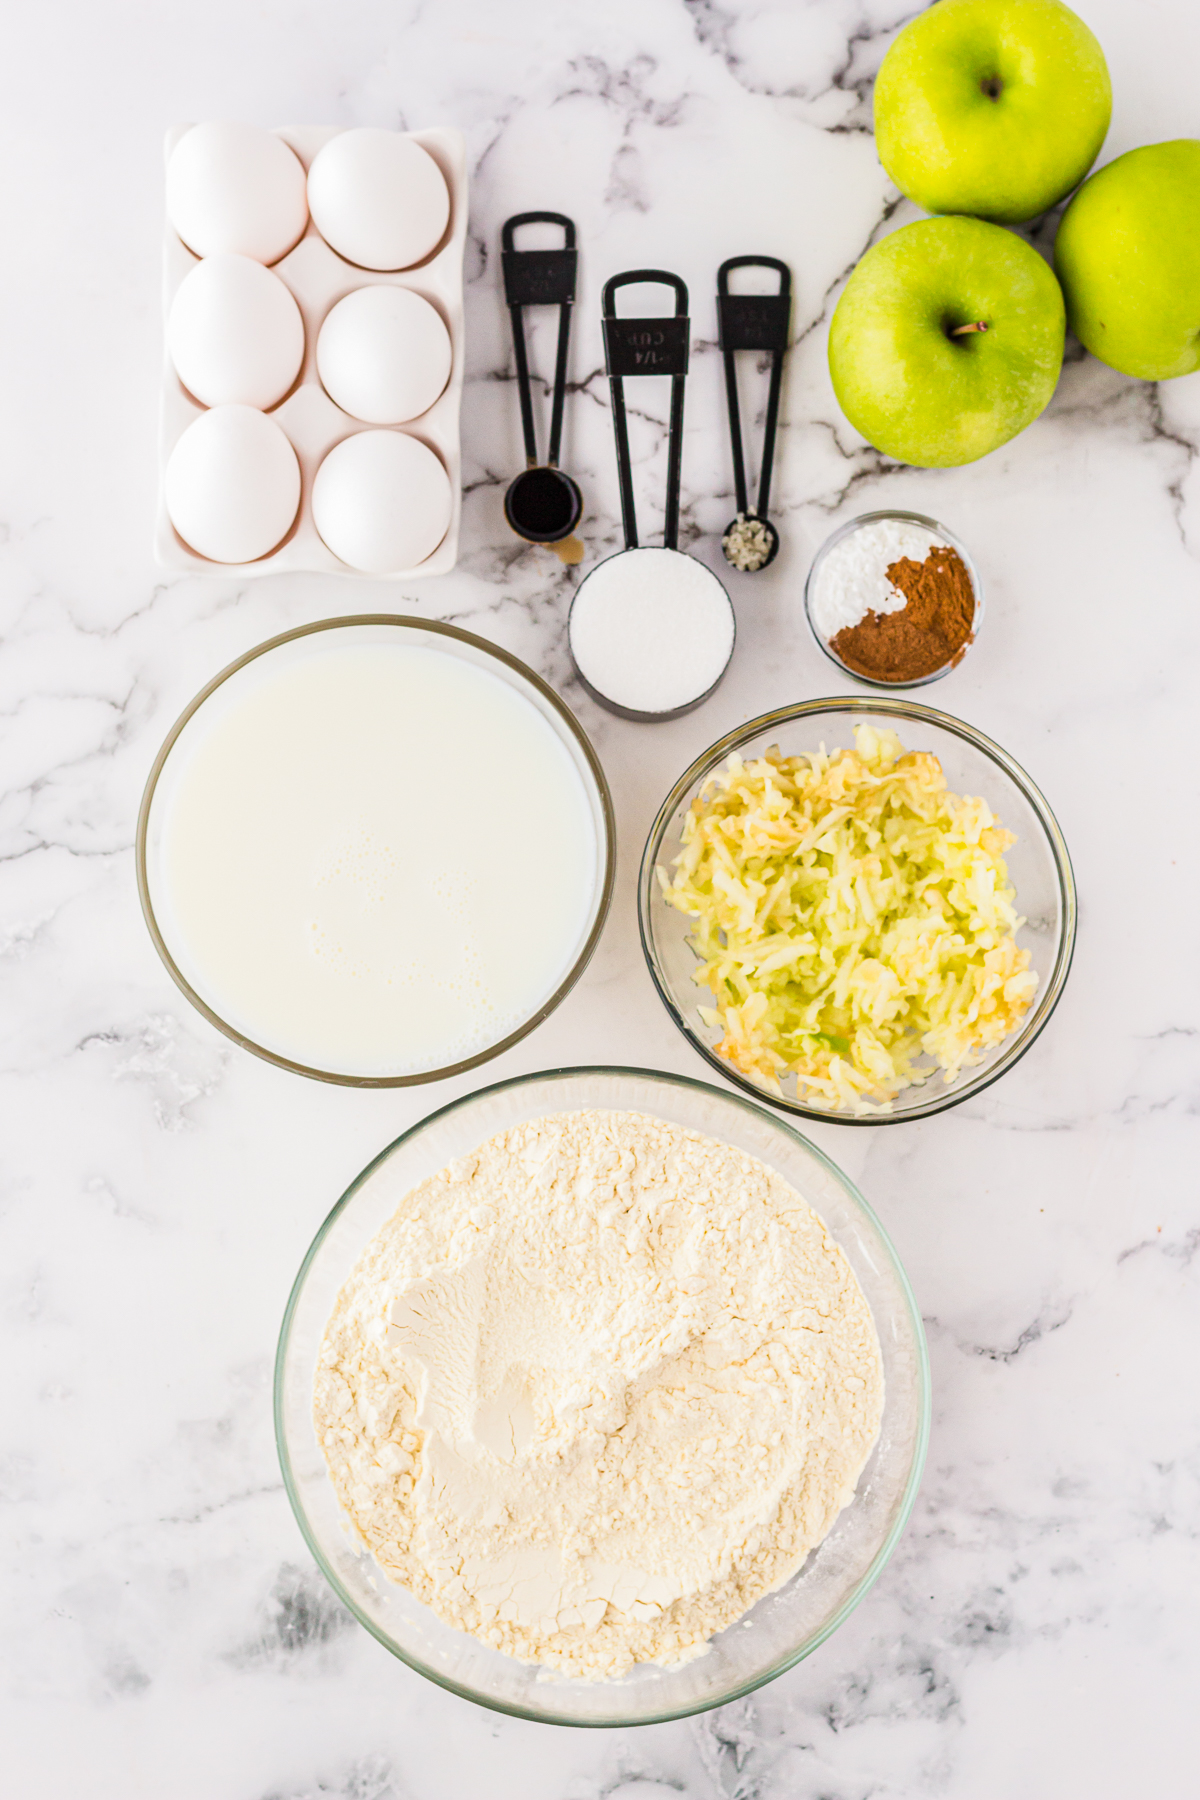 Ingredients needed to make Caramel Apple Funnel Cakes